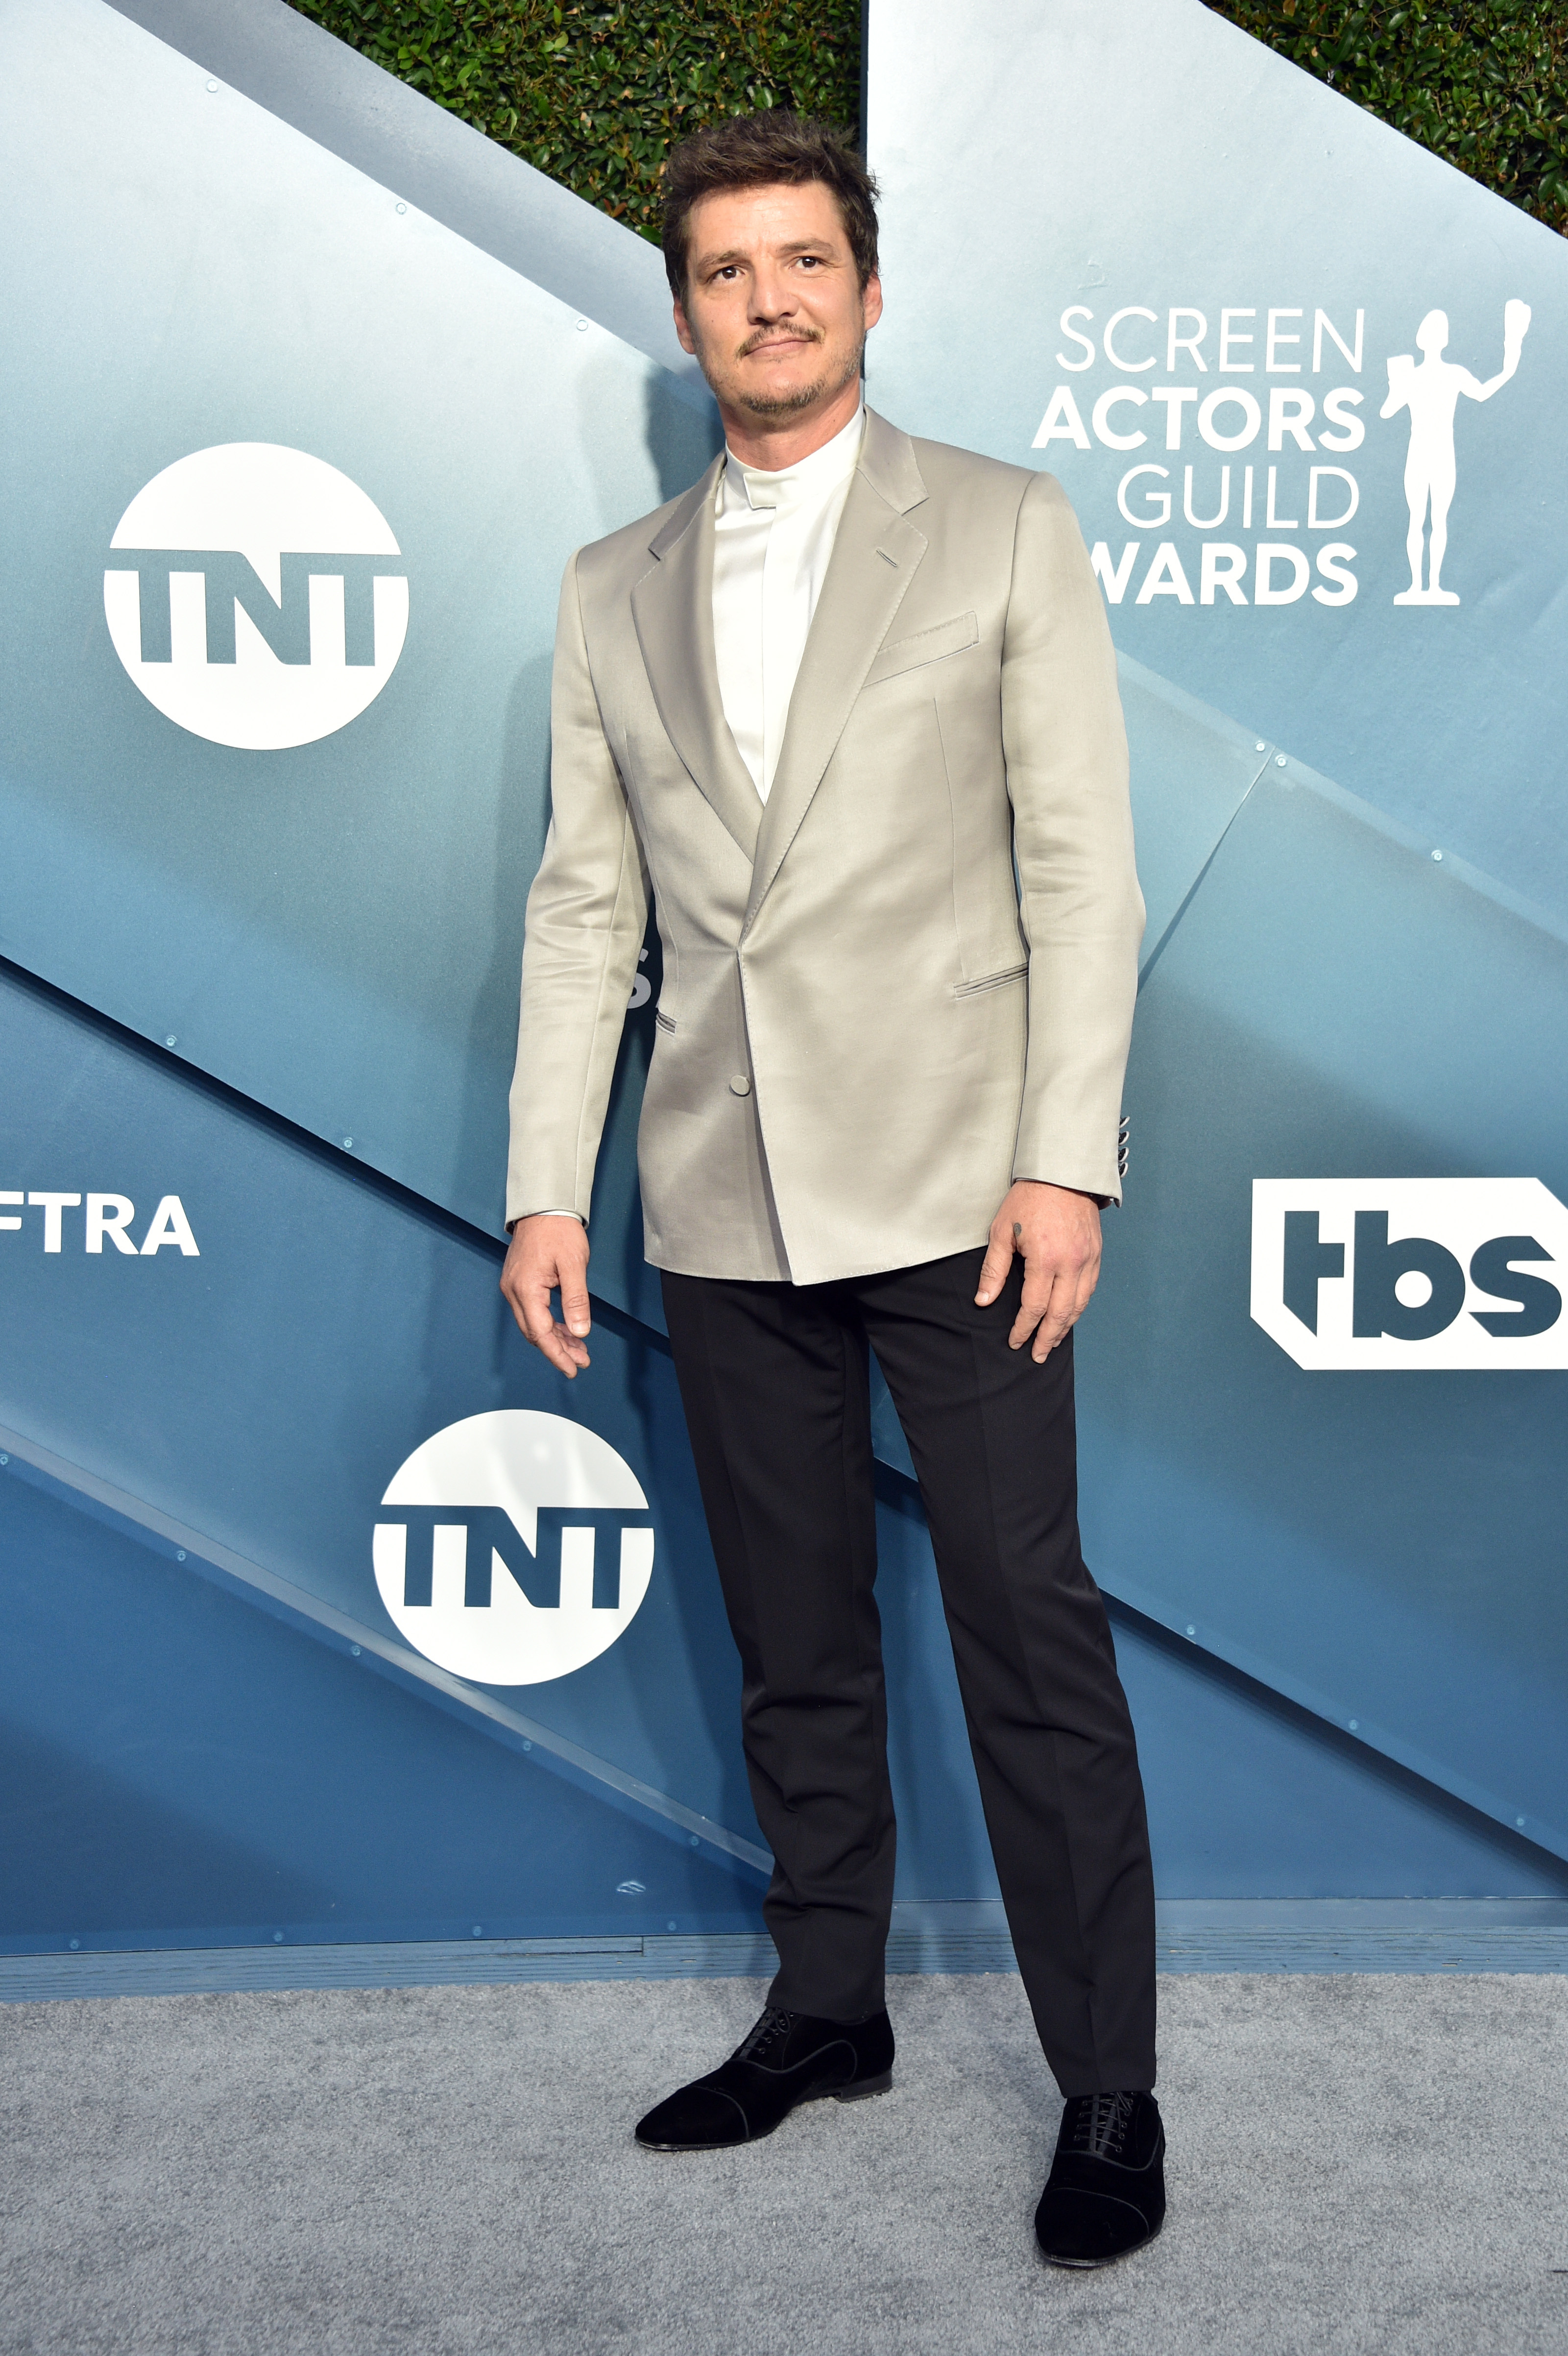 LOS ANGELES, CALIFORNIA - JANUARY 19: Pedro Pascal attends the 26th Annual Screen ActorsGuild Awards at The Shrine Auditorium on January 19, 2020 in Los Angeles, California. 721430 (Photo by Gregg DeGuire/Getty Images for Turner)